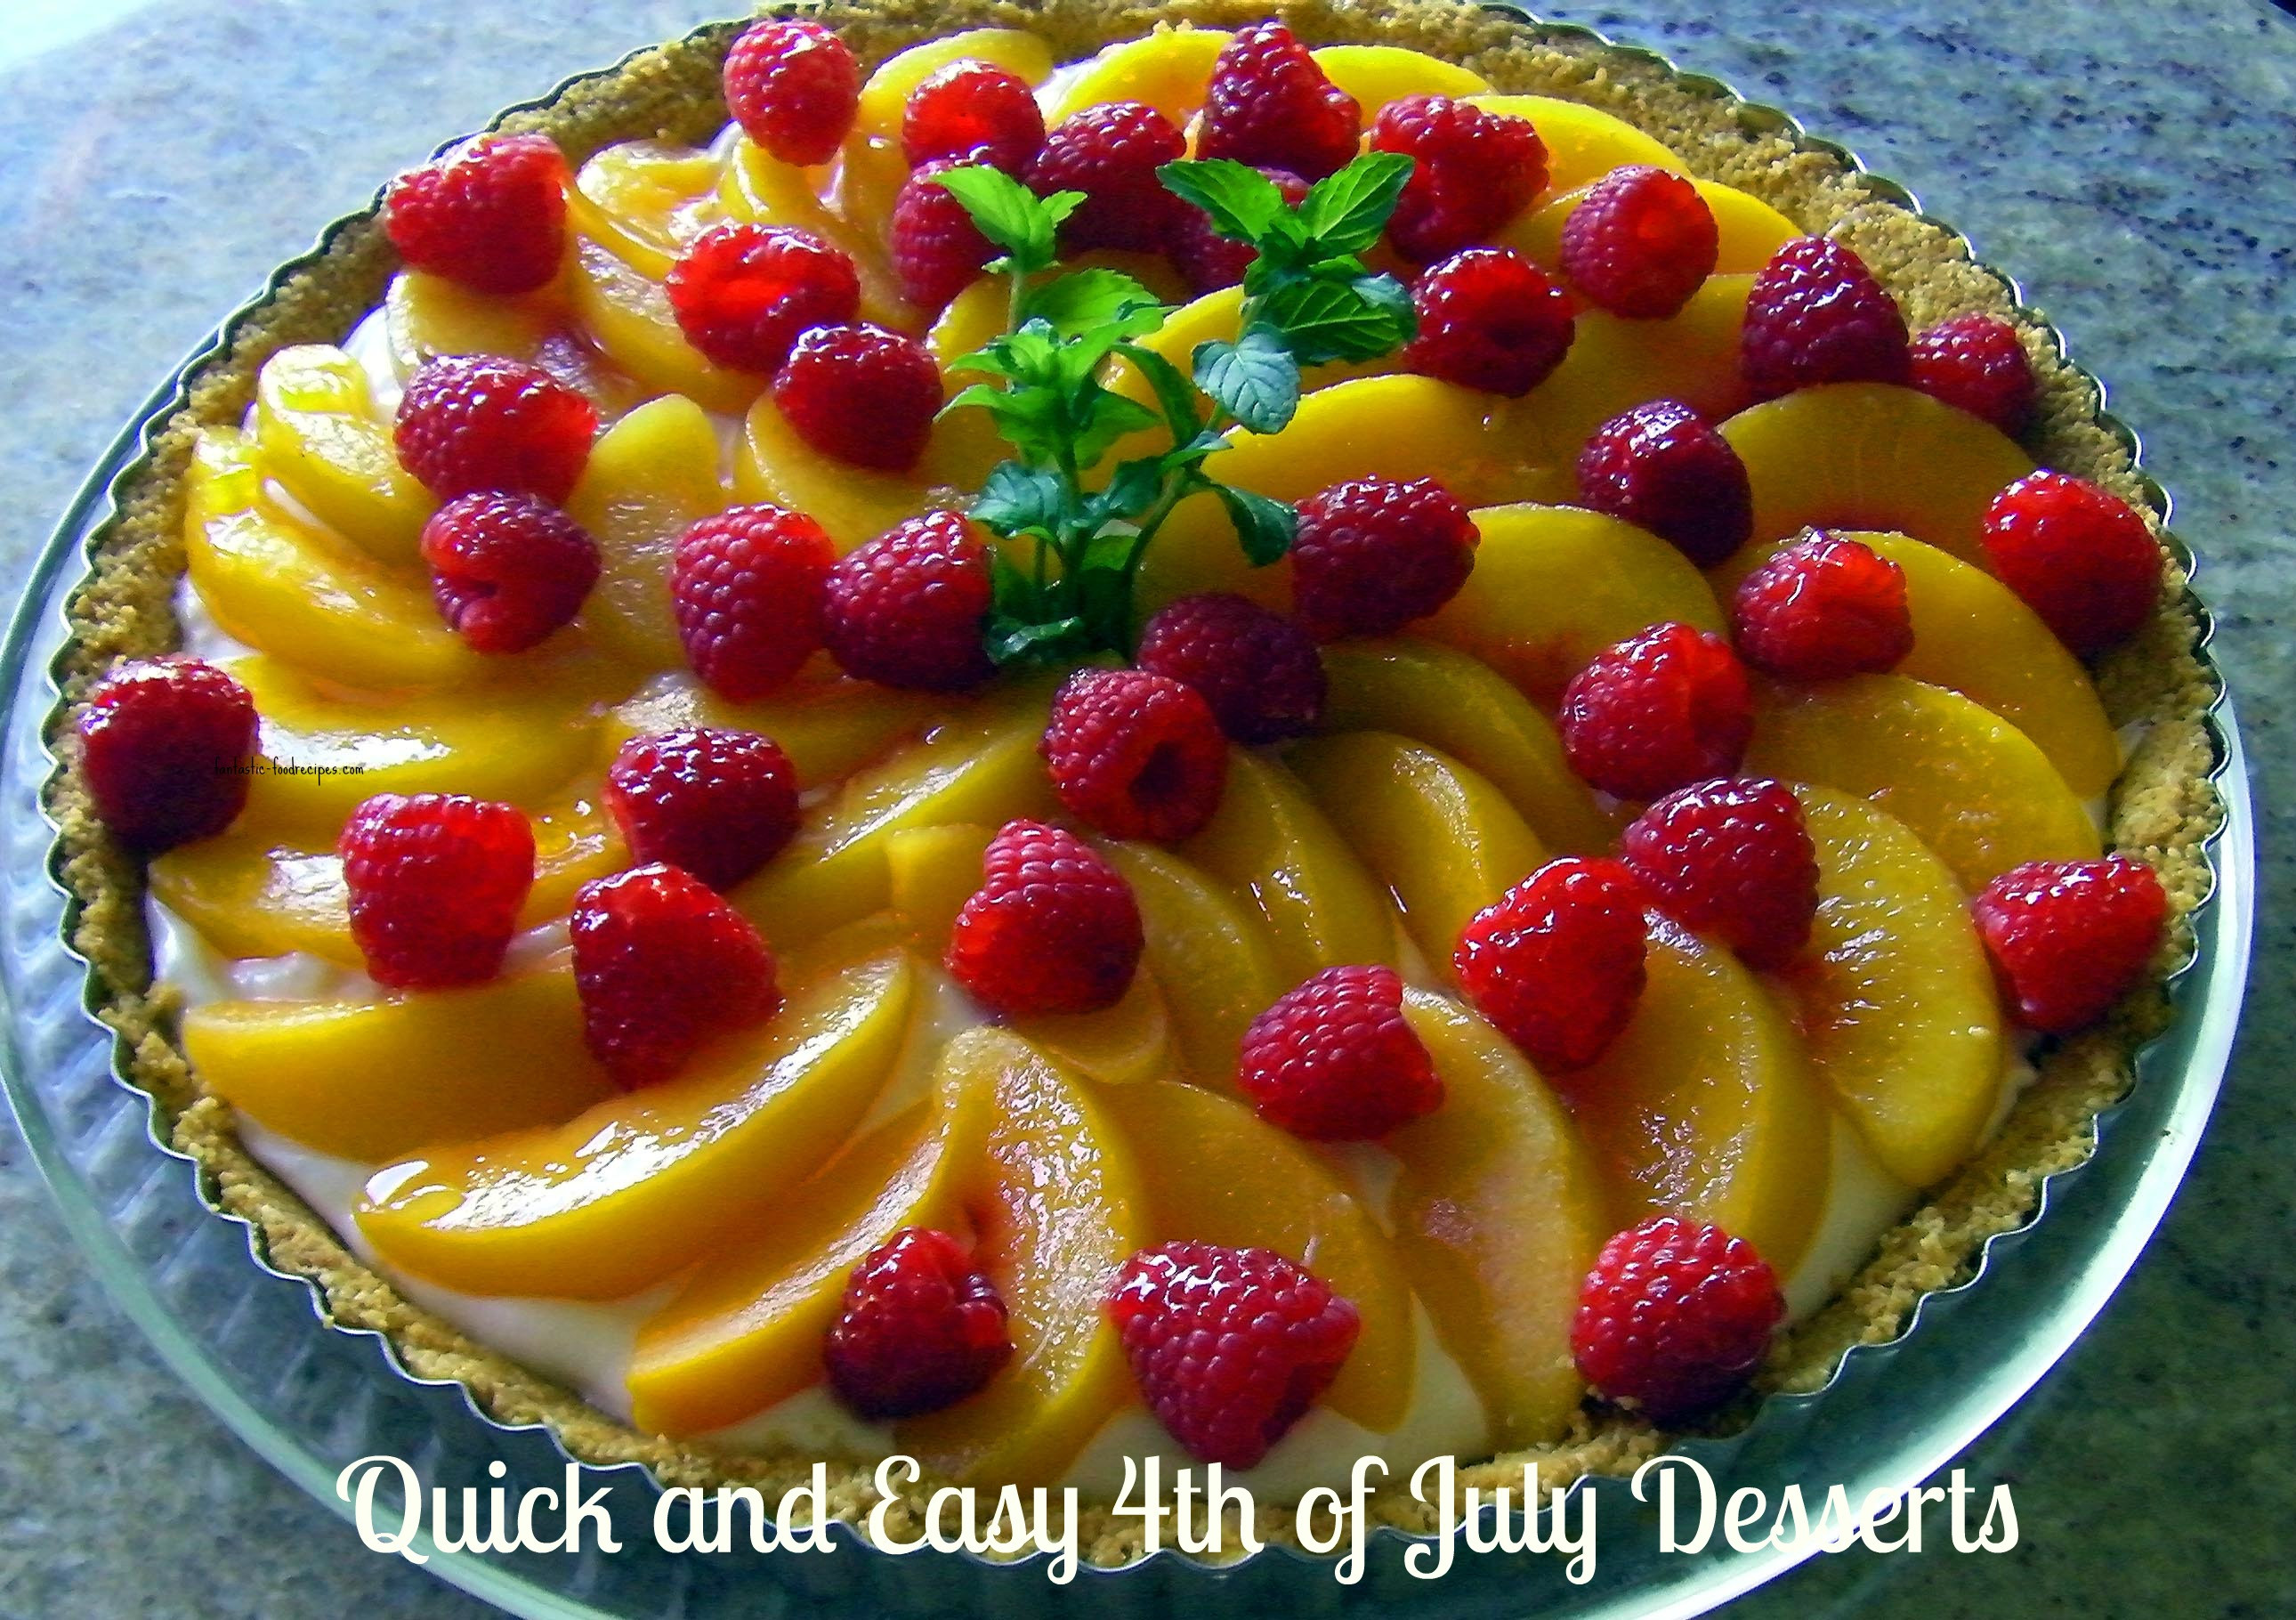 Quick And Easy Fourth Of July Desserts  Quick and Easy 4th of July Desserts